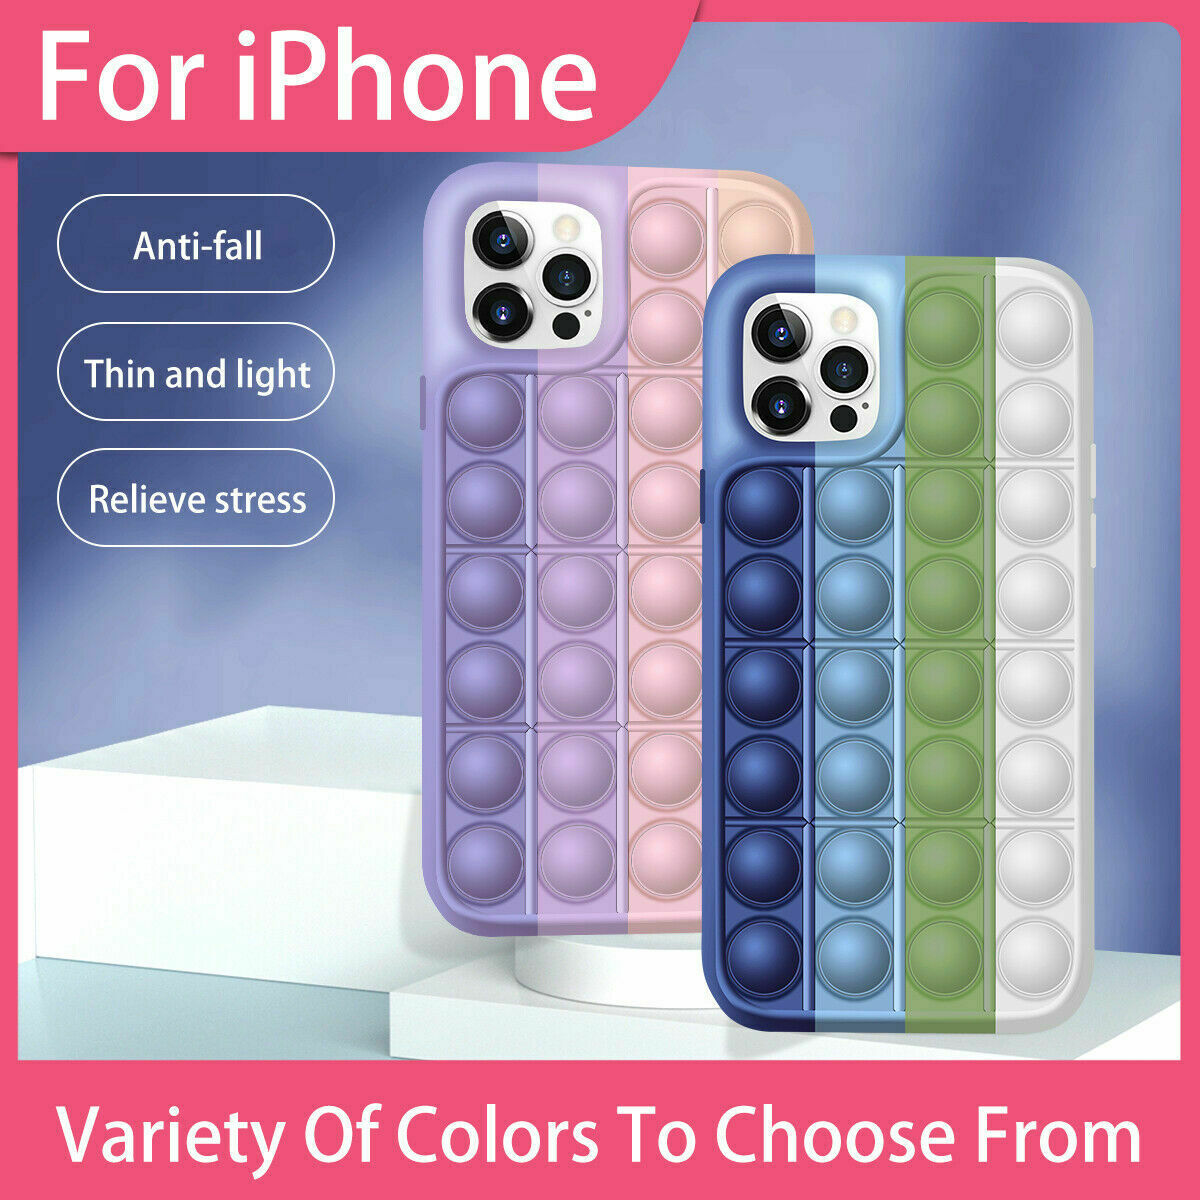 Stress Reliver Silicone Case Cover For iPhone 12 Pro Max Mini 11 XR XS 7 8 Plus